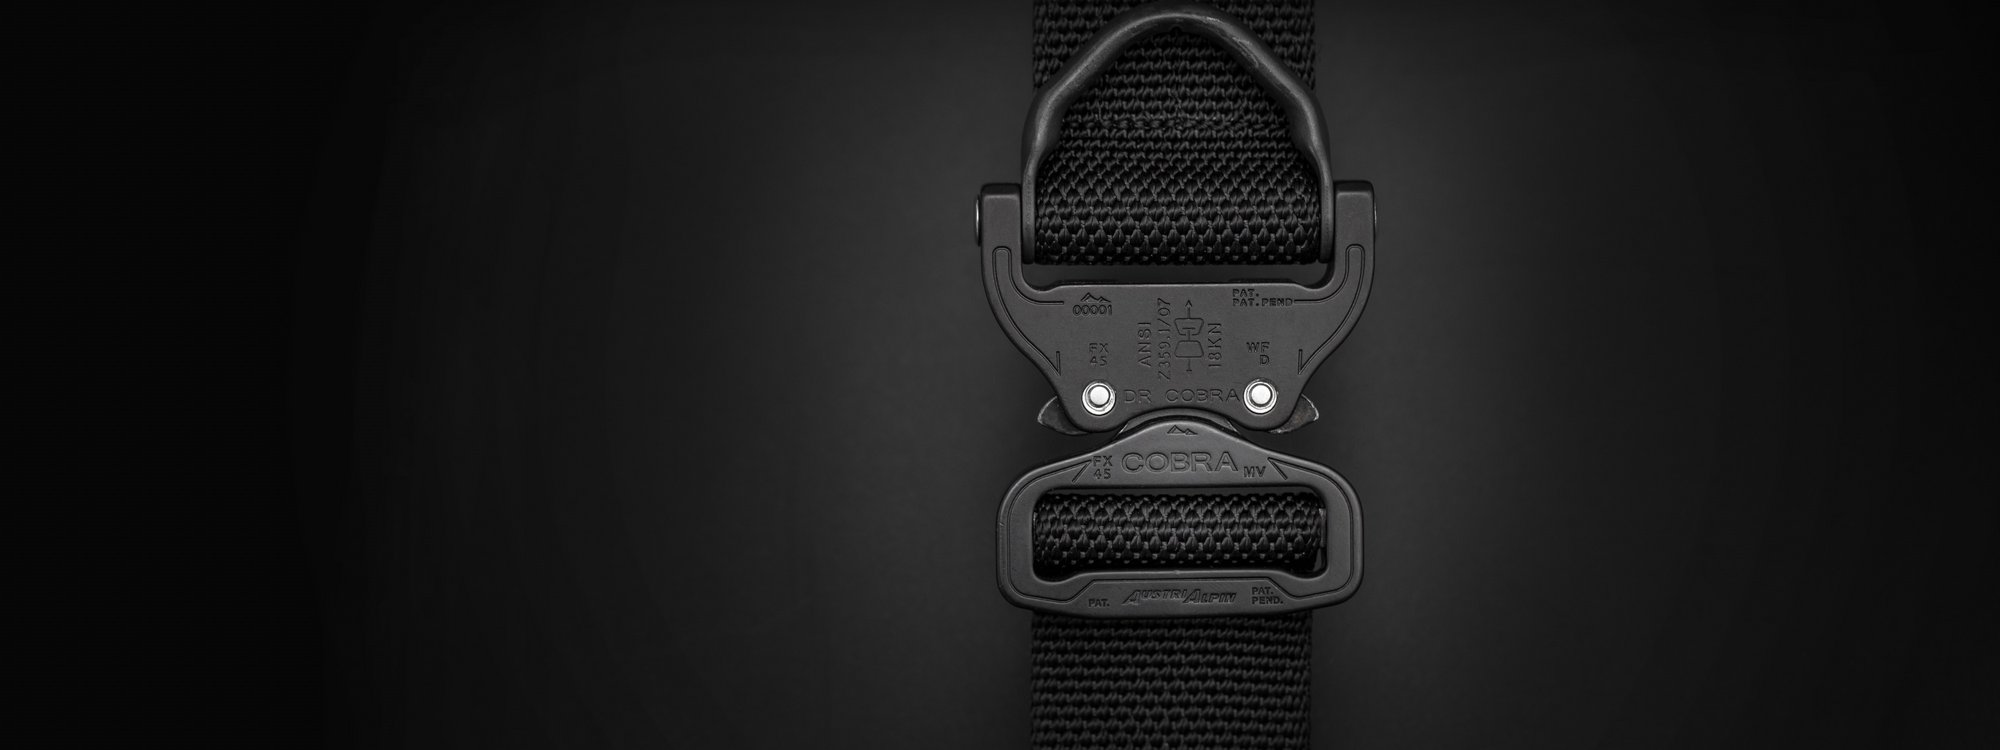 AUSTRIALPIN - PRIME LEADER OF SAFETY BUCKLES